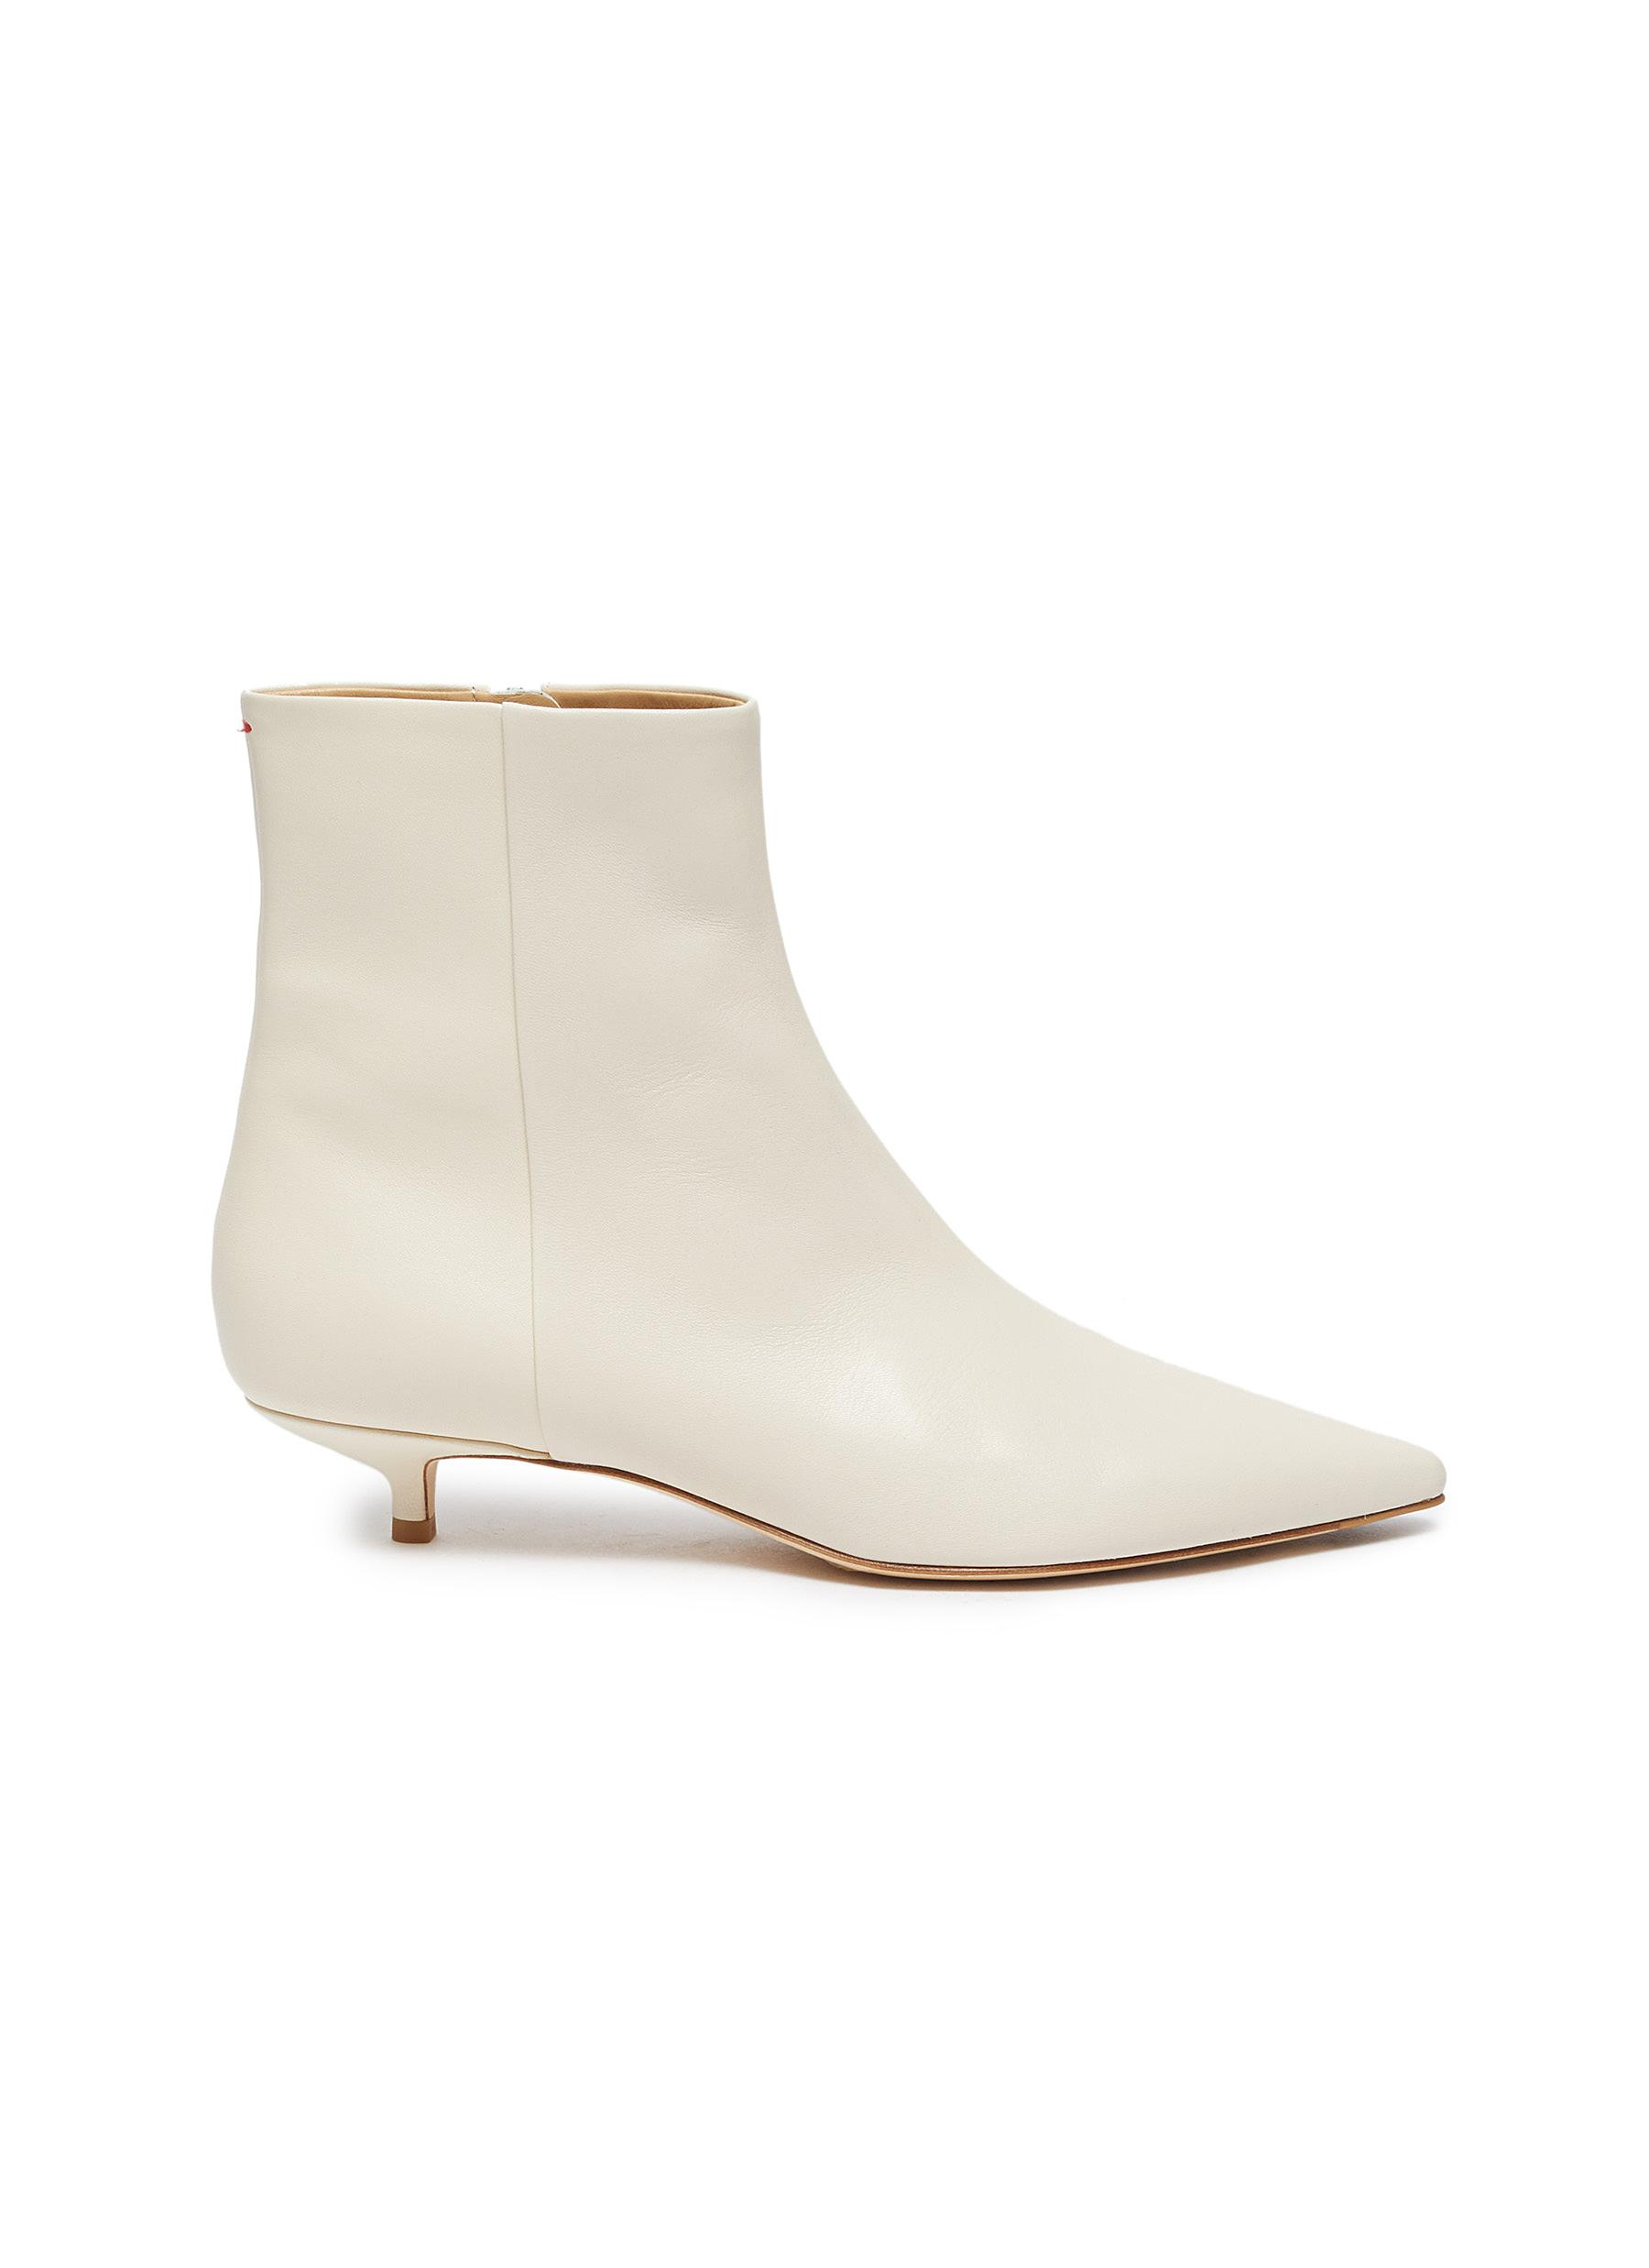 Aeyde 'INA' LEATHER ANKLE BOOTS